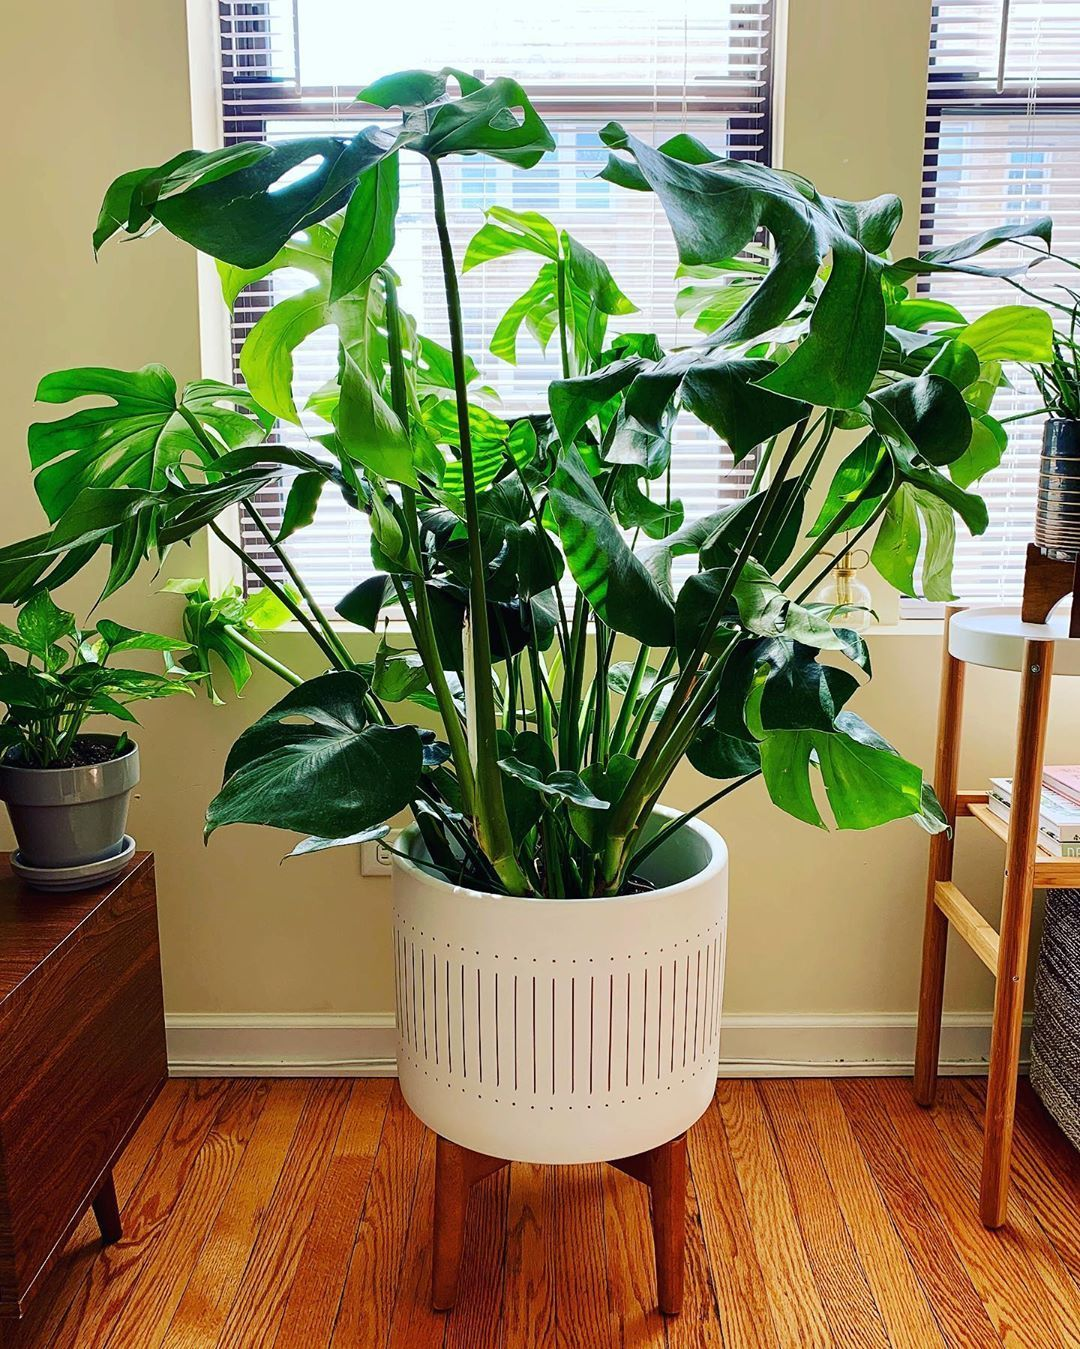 How to care for and propagate your monstera plant in